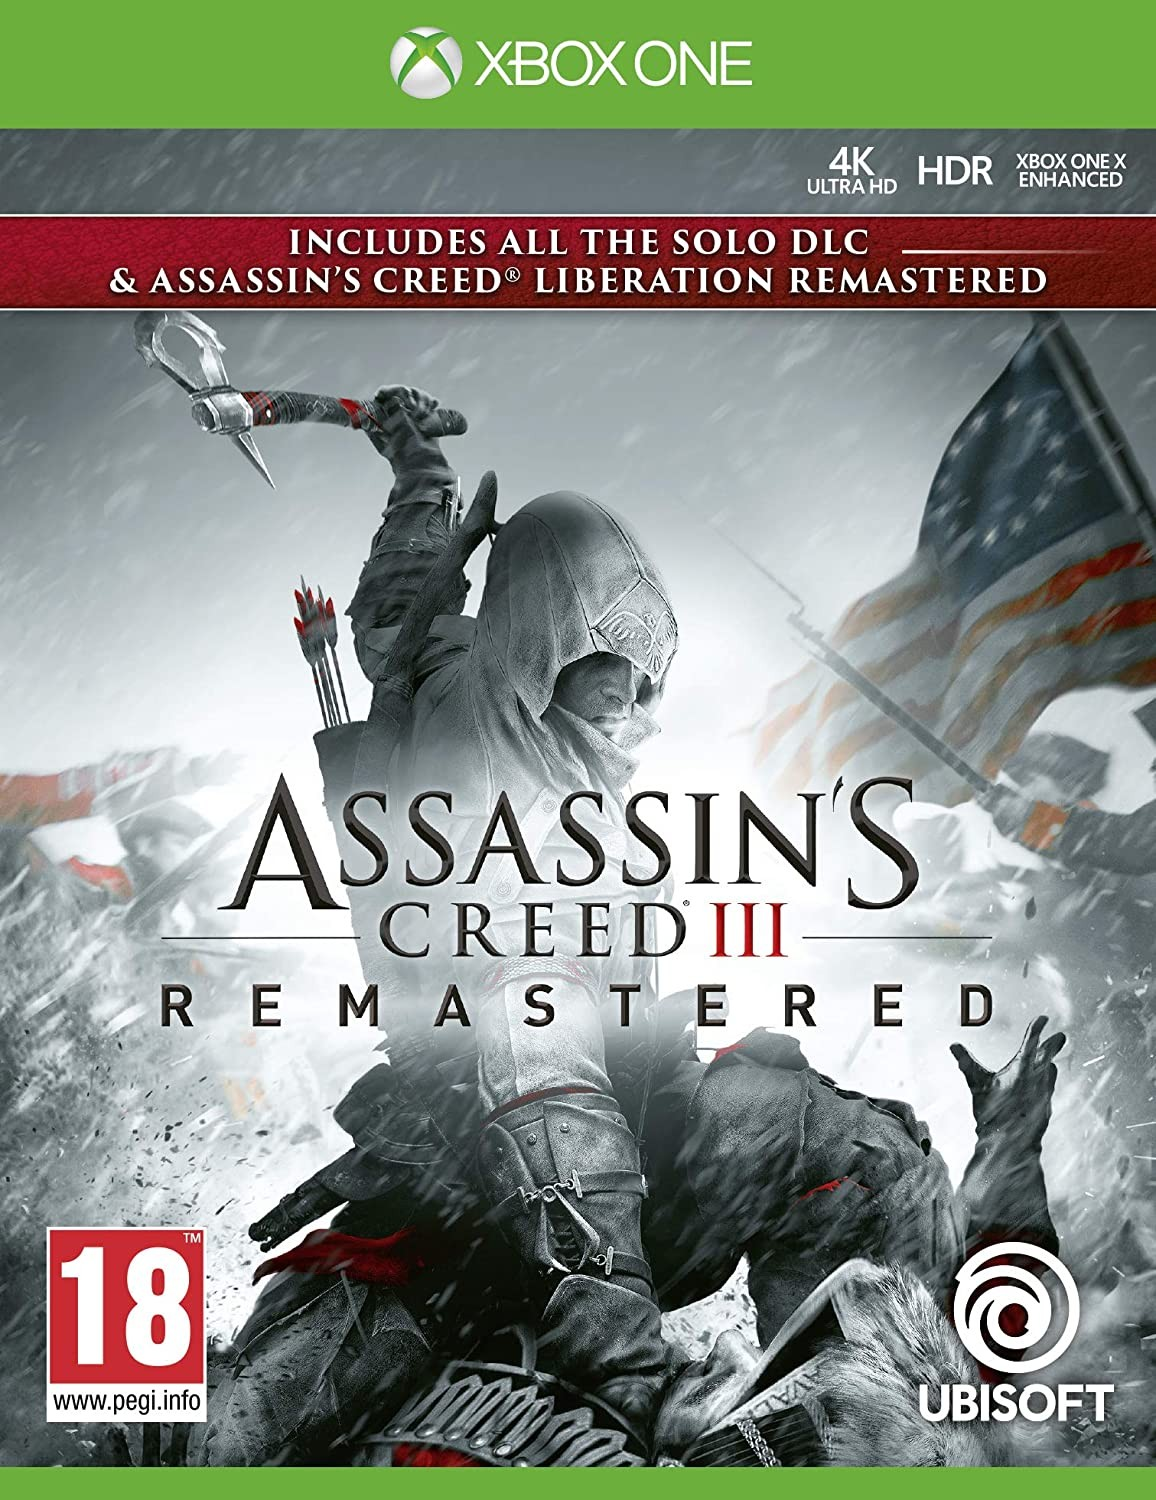 Assassin's Creed III Обновленная версия | Assassin's Creed III Remastered XONE